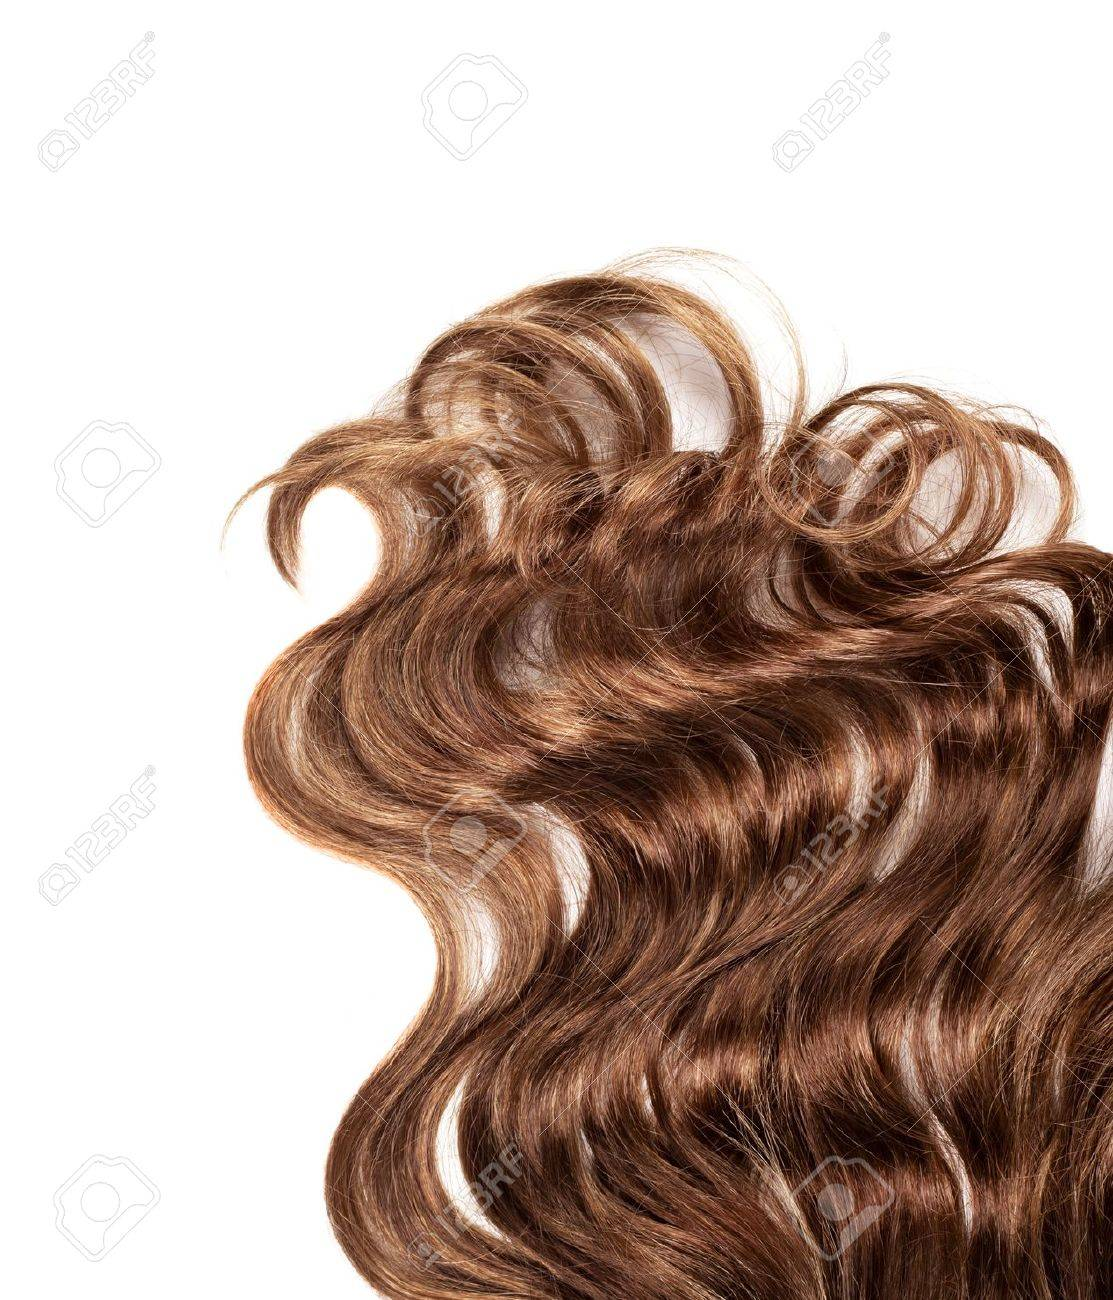 human brown hair on white isolated background Stock Photo - 12649029